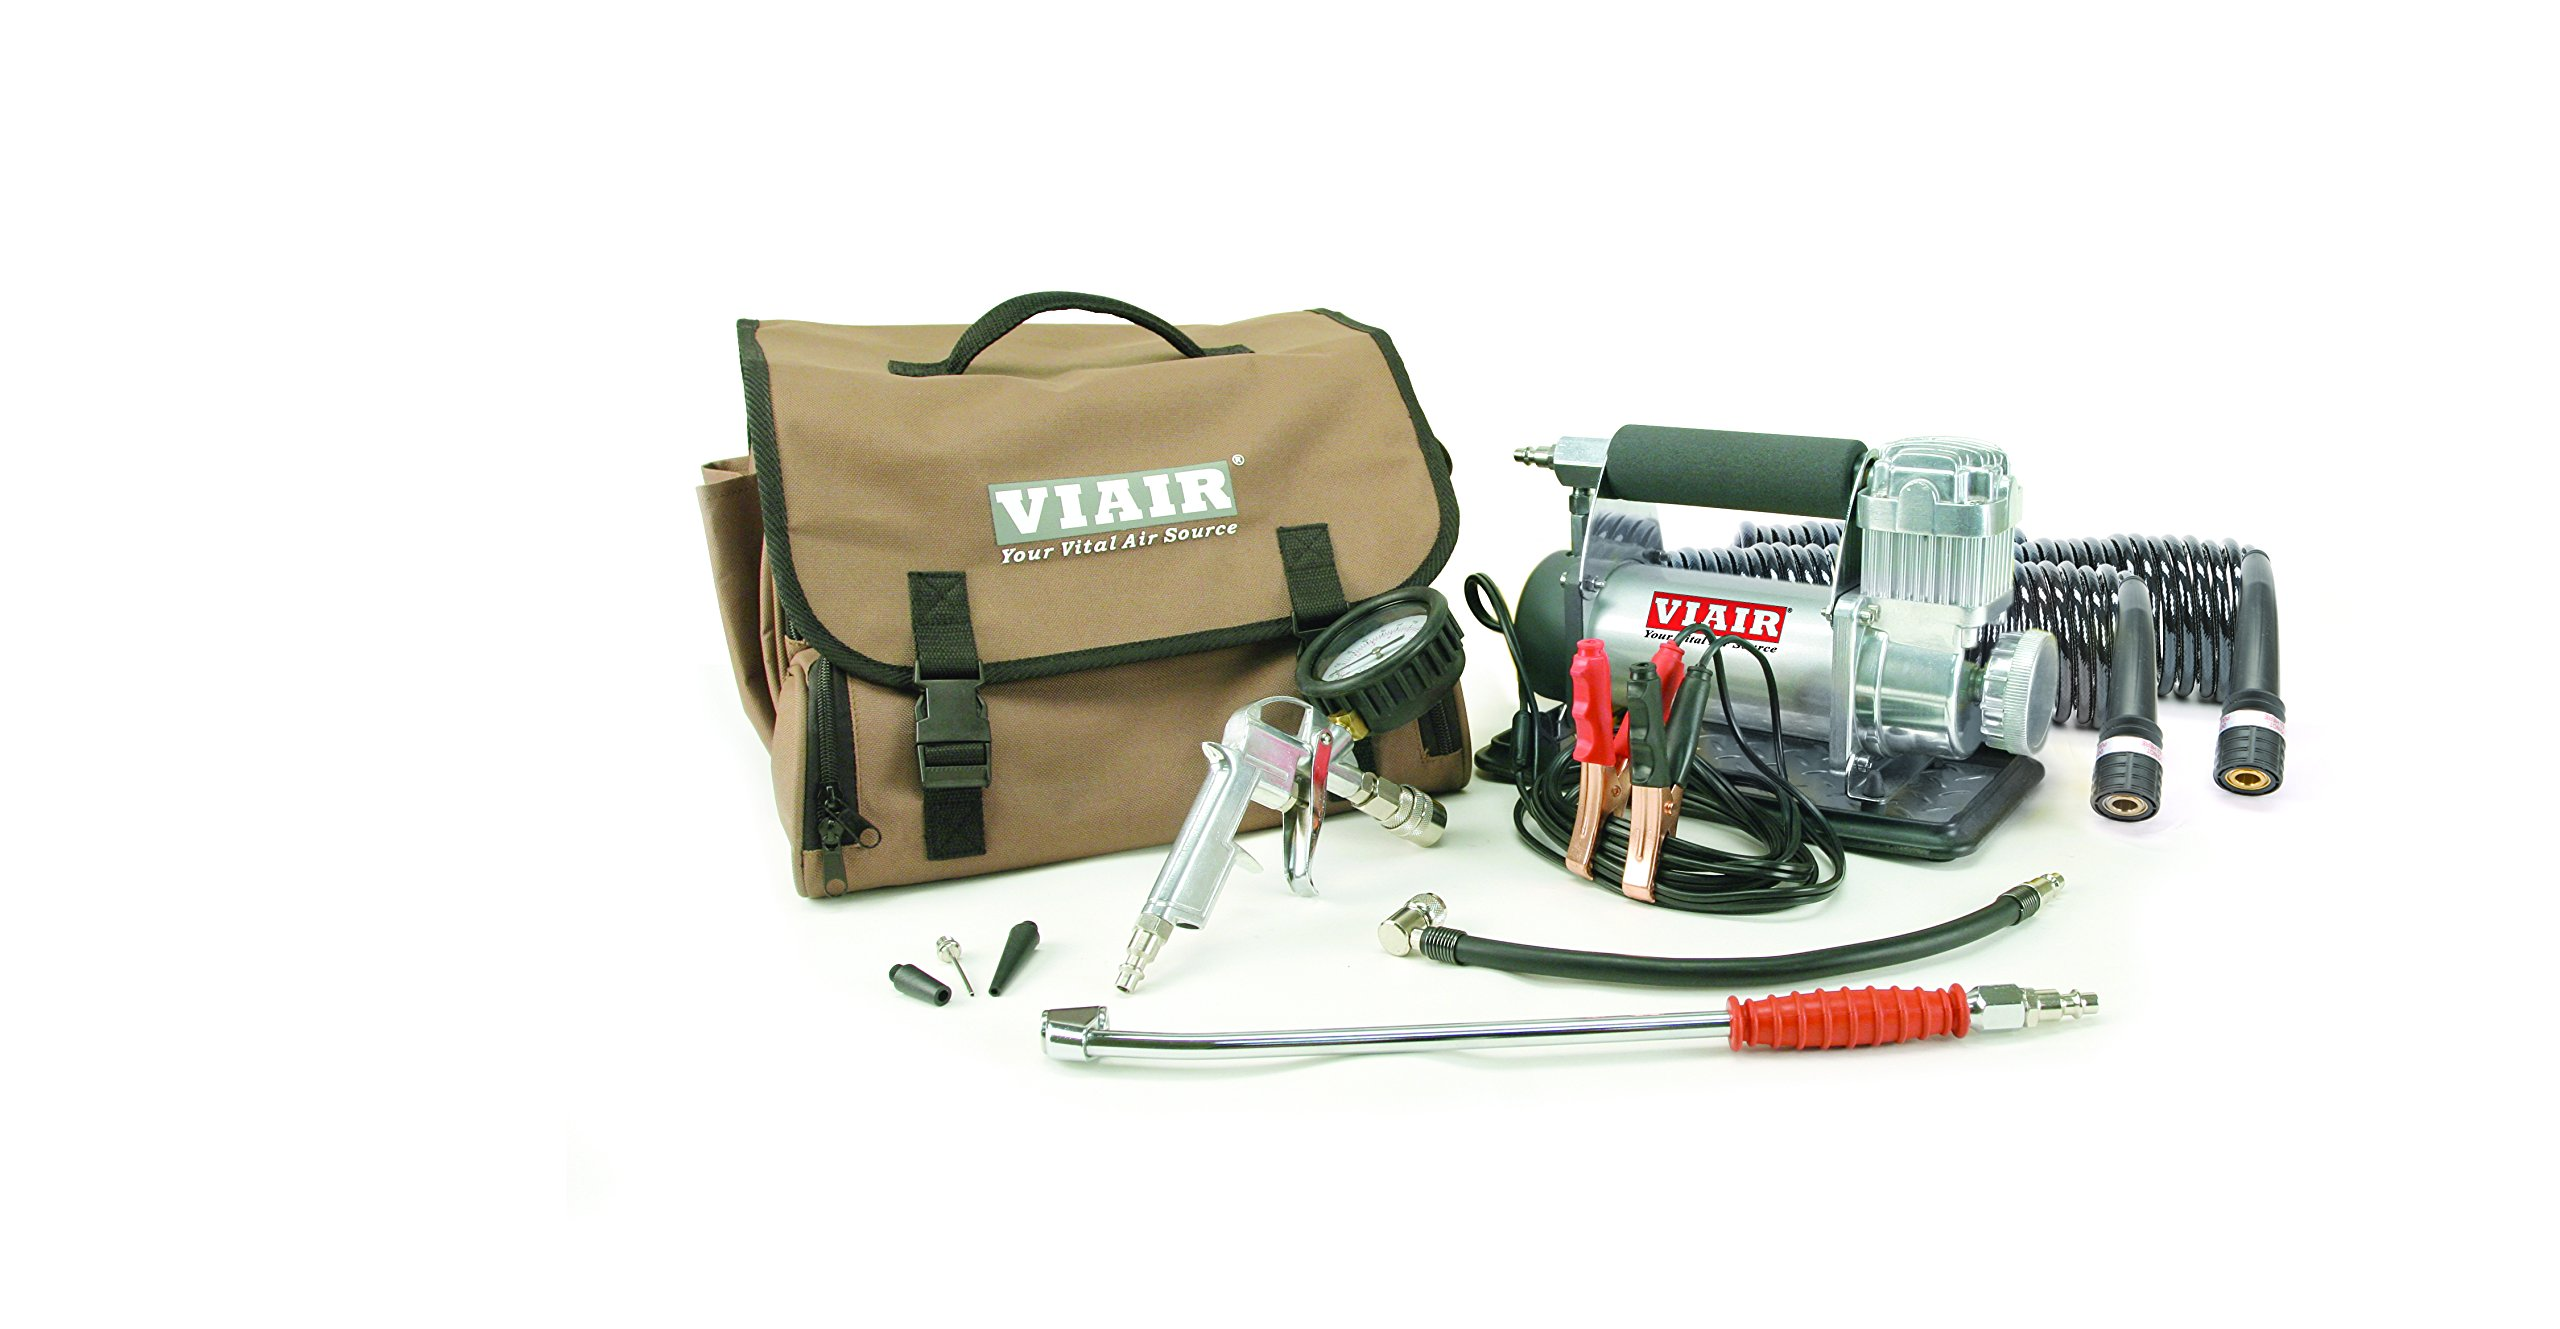 Viair 40047 400P-RV Automatic Portable Compressor Kit product image